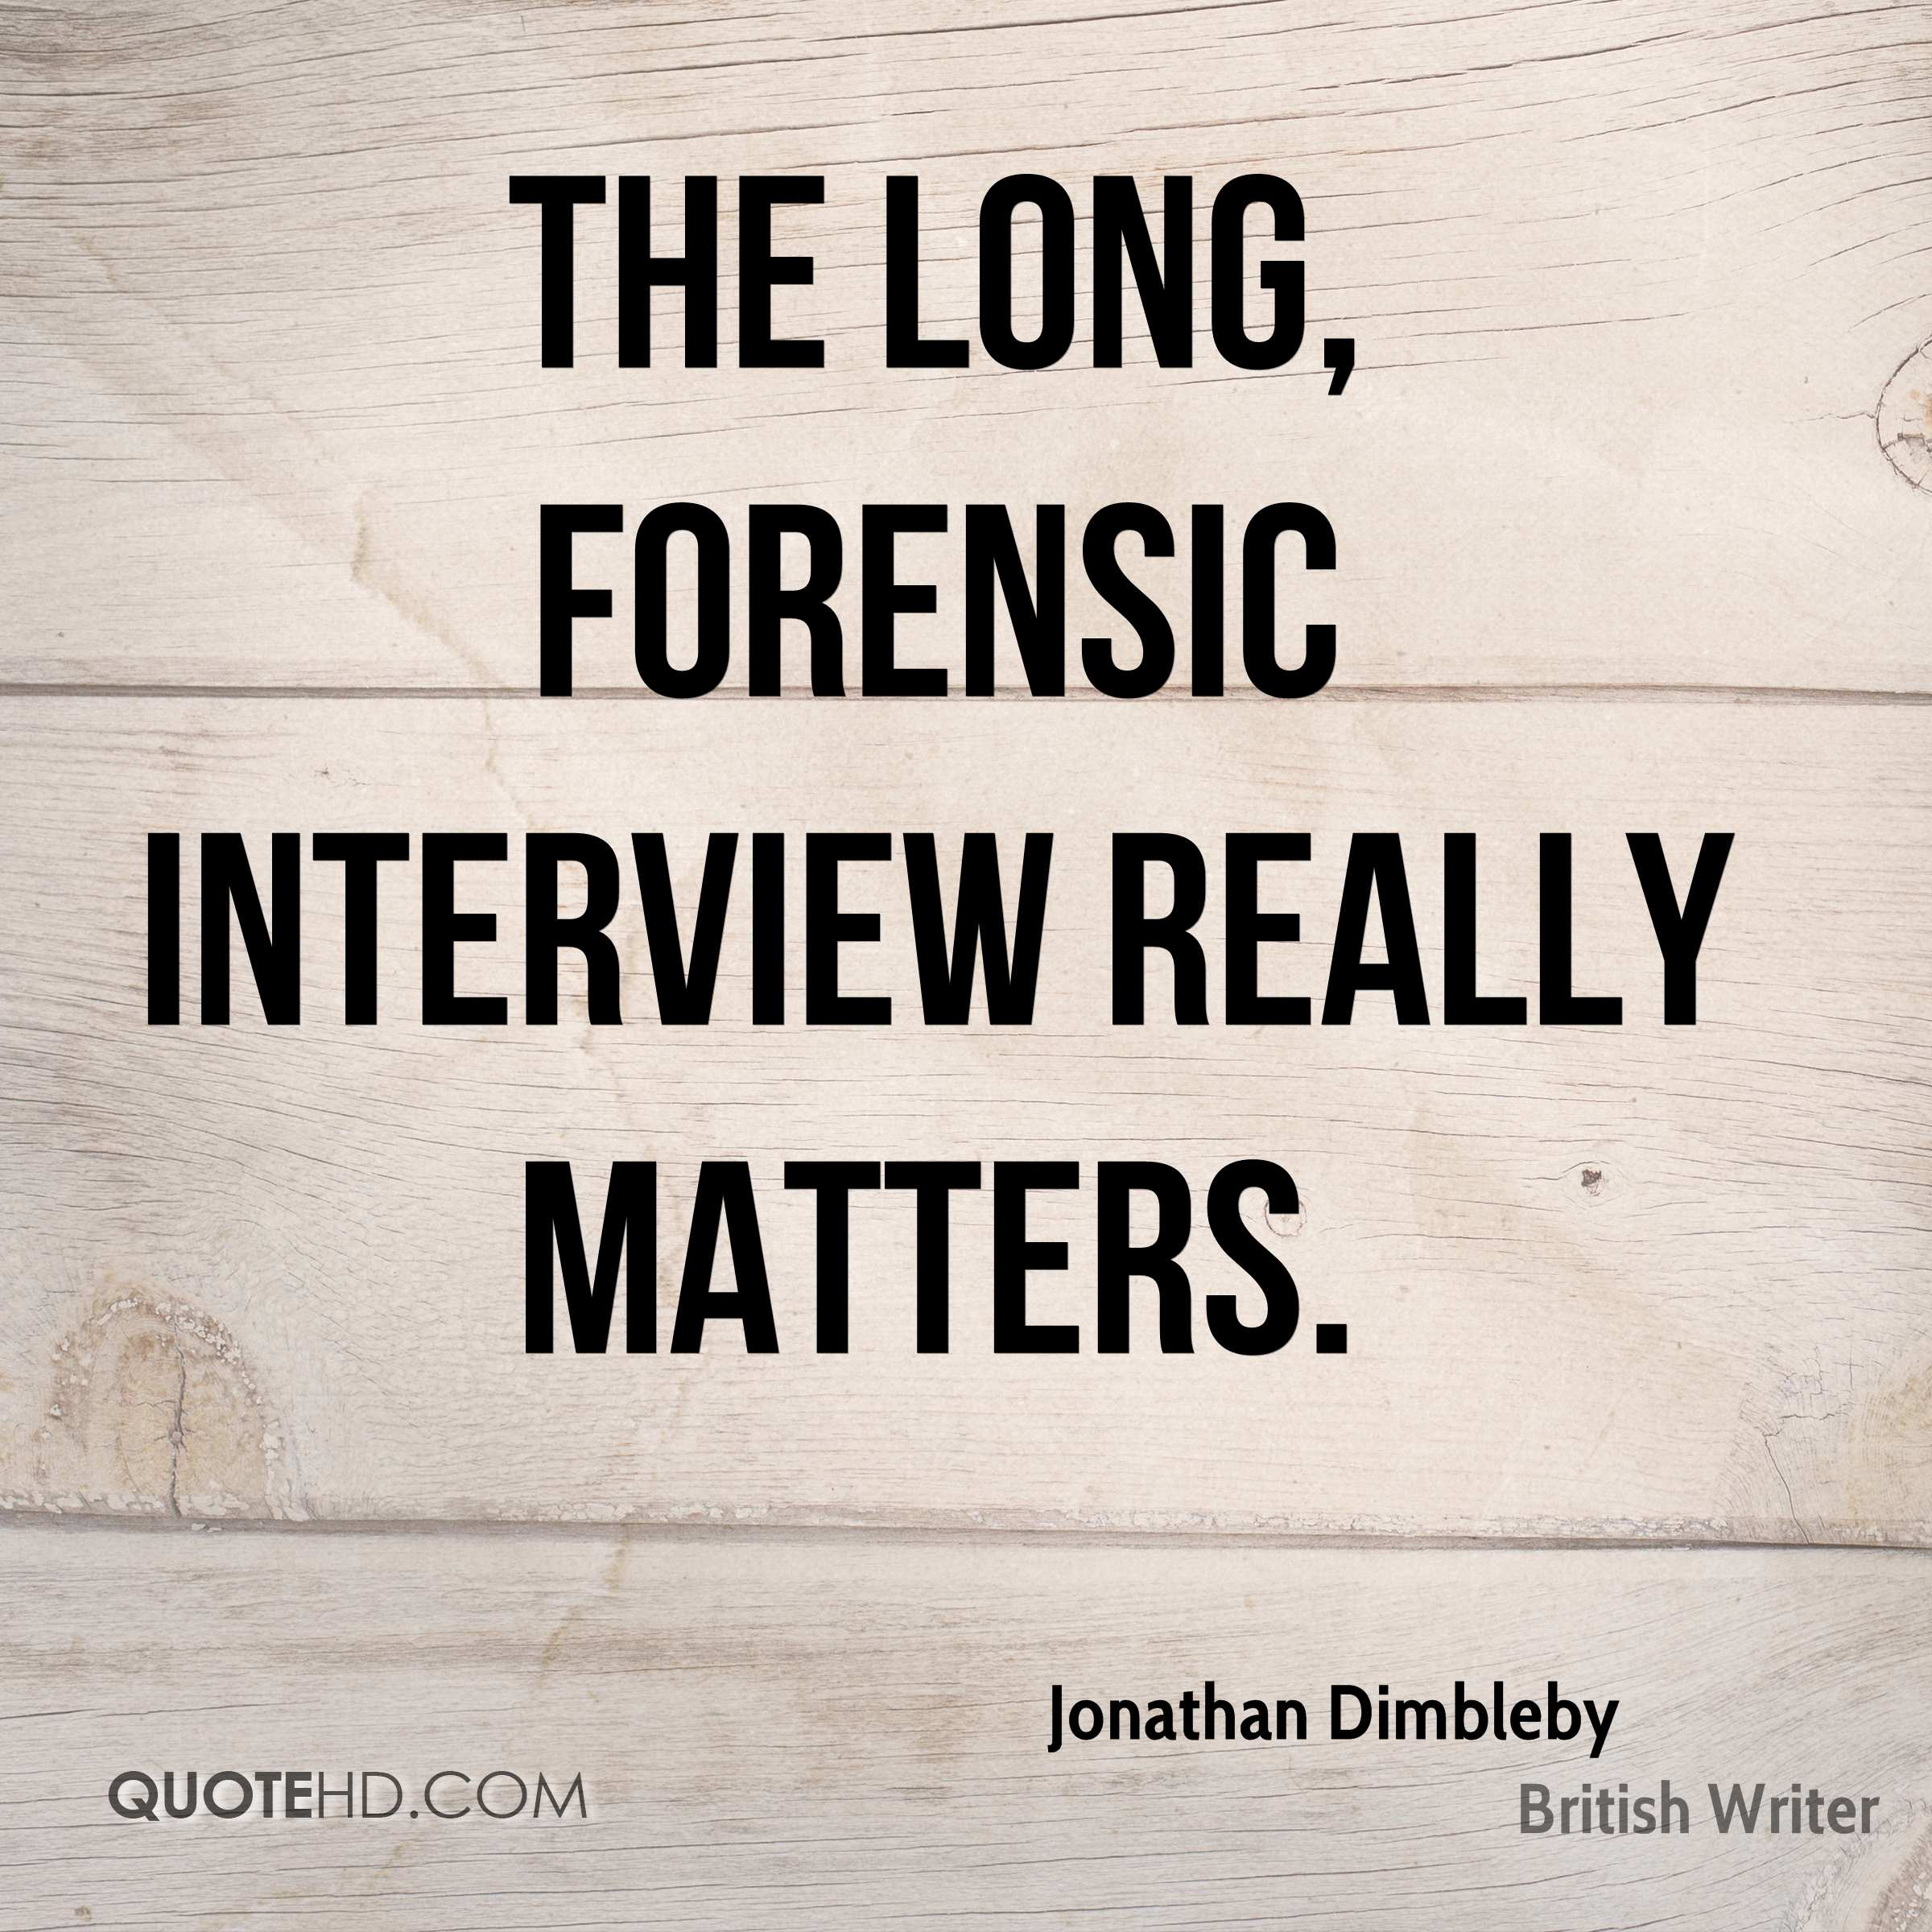 The long, forensic interview really matters.